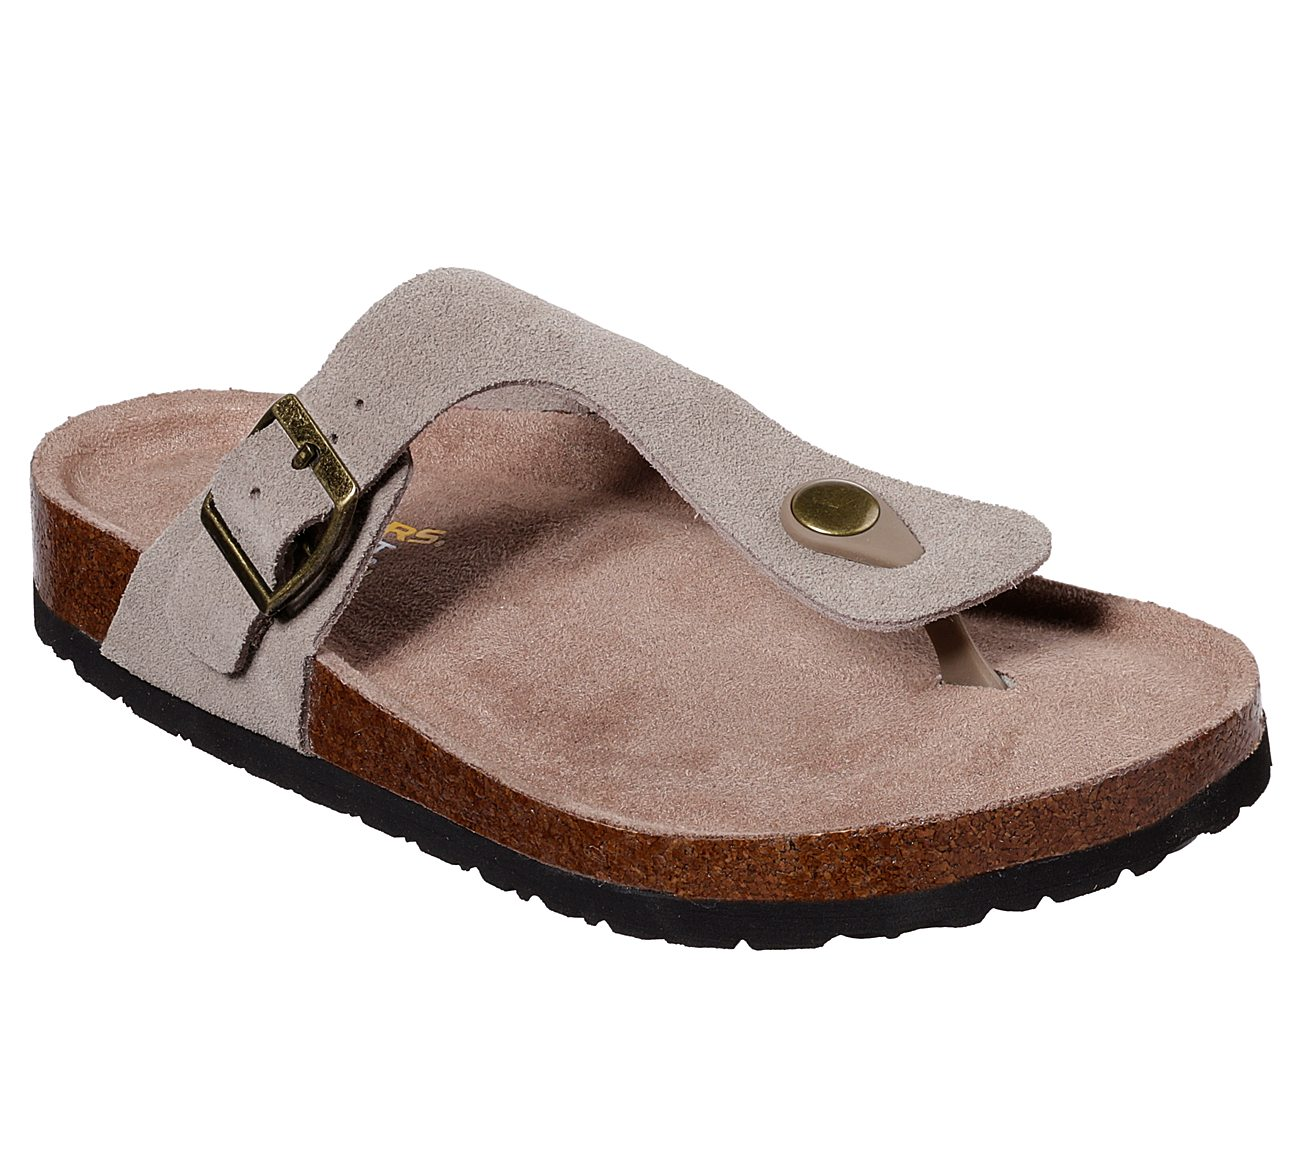 Skechers Relaxed Fit Granola Pyramids Thong Sandal (Women's)